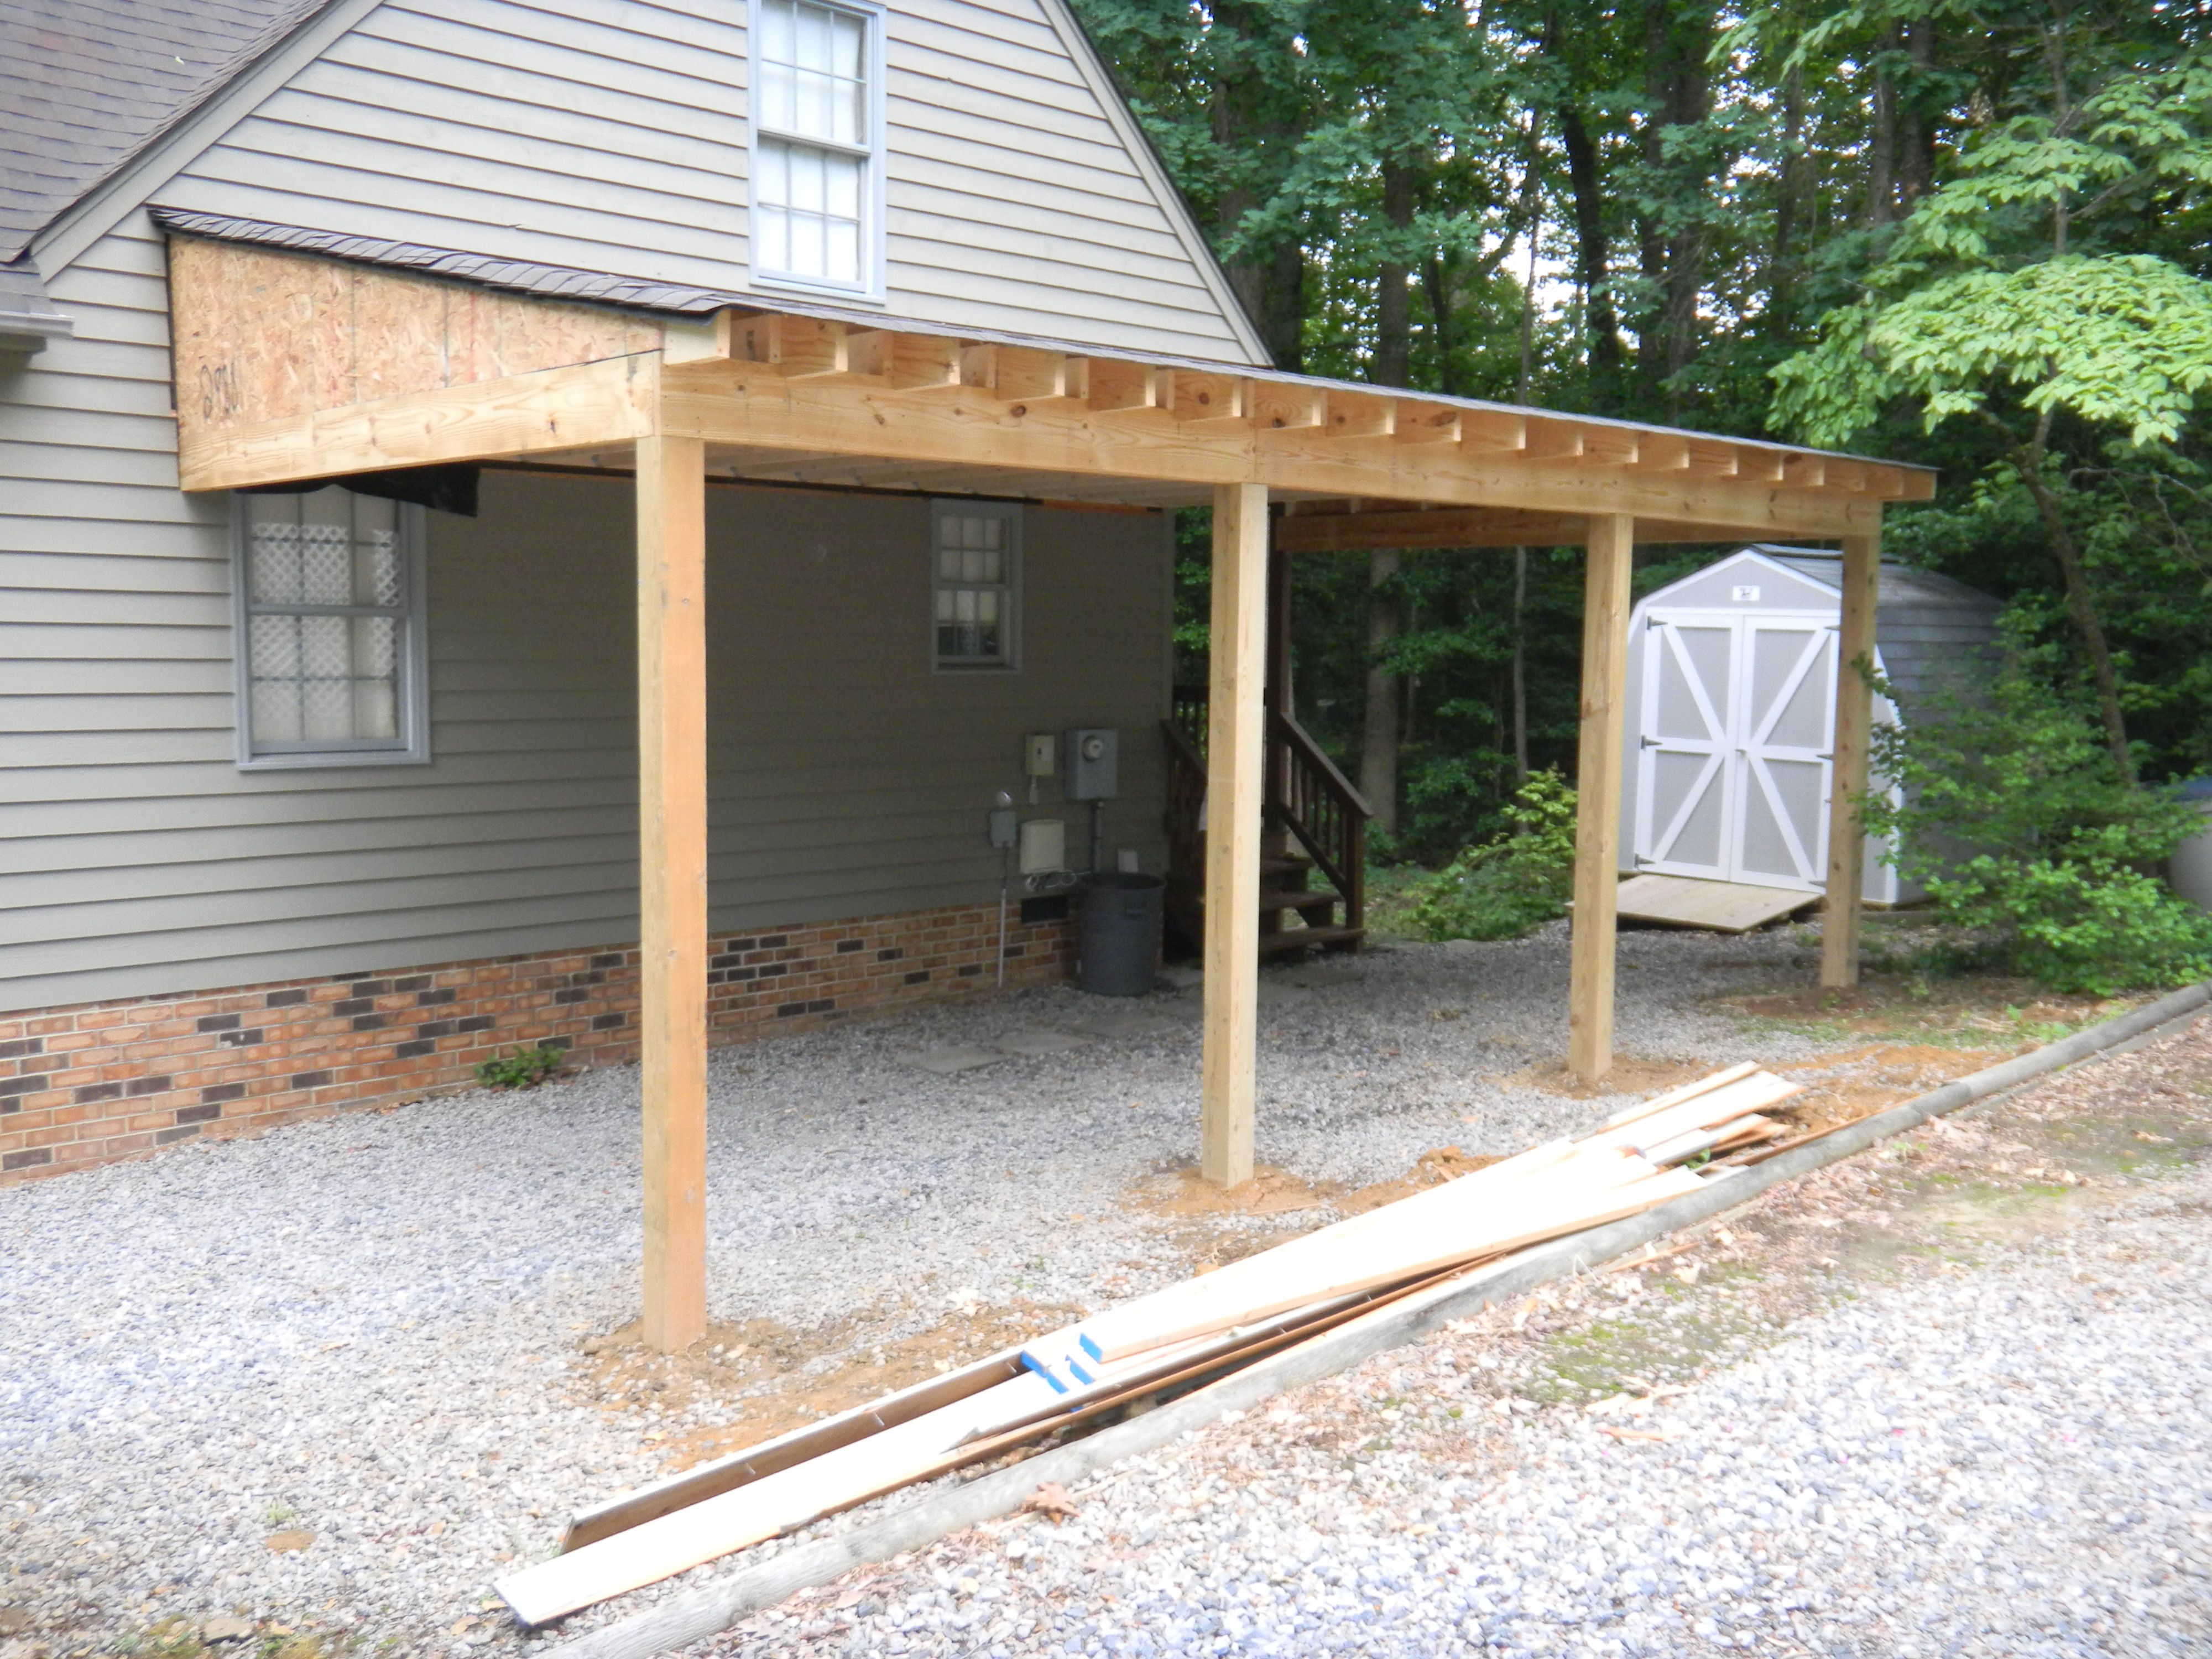 Carport Additions Progress Photo Of Carport In Chesterfield Va HOUSE ADDITIONS In 2019